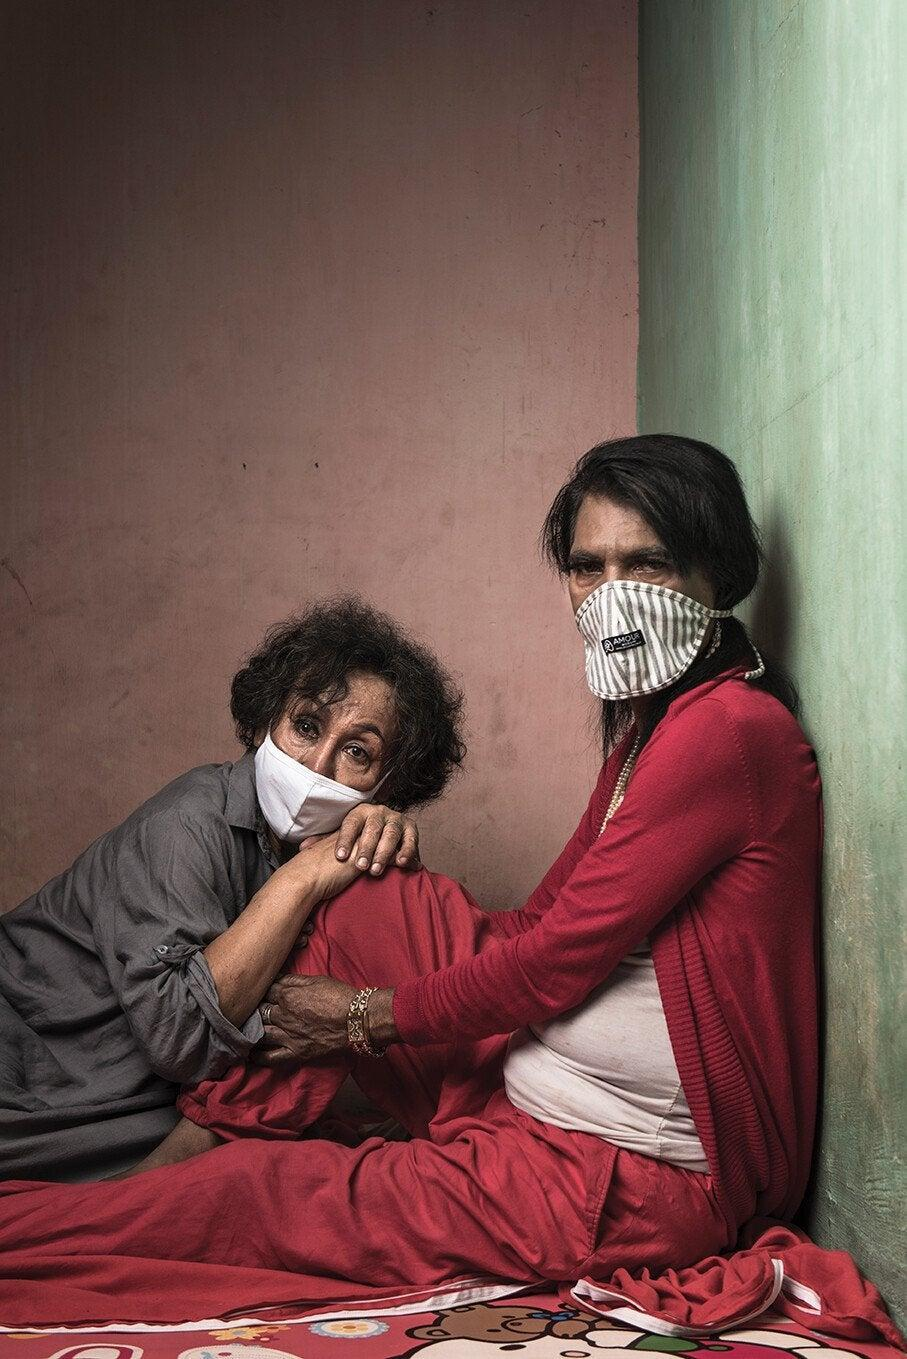 (Yoppy Pieter/Wellcome Photography Prize/PA)